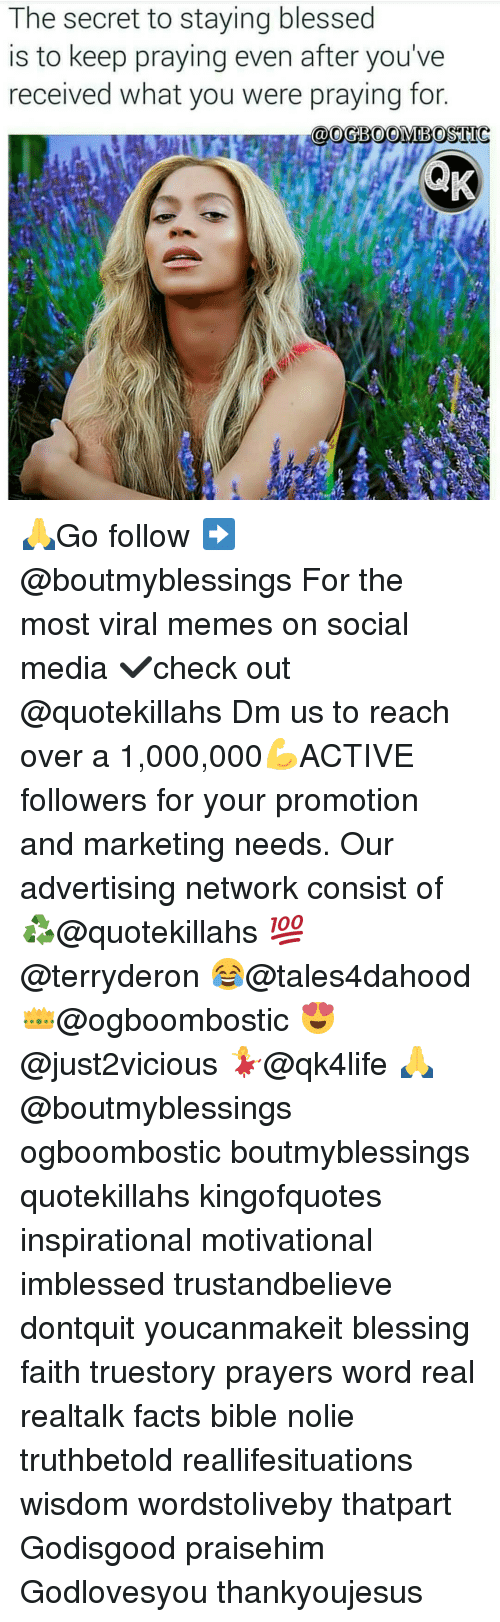 Memes, 🤖, and Media: The secret to staying blessed  is to keep praying even after you've  received what you were praying for.  COM 🙏Go follow ➡@boutmyblessings For the most viral memes on social media ✔check out @quotekillahs Dm us to reach over a 1,000,000💪ACTIVE followers for your promotion and marketing needs. Our advertising network consist of ♻@quotekillahs 💯@terryderon 😂@tales4dahood 👑@ogboombostic 😍@just2vicious 💃@qk4life 🙏@boutmyblessings ogboombostic boutmyblessings quotekillahs kingofquotes inspirational motivational imblessed trustandbelieve dontquit youcanmakeit blessing faith truestory prayers word real realtalk facts bible nolie truthbetold reallifesituations wisdom wordstoliveby thatpart Godisgood praisehim Godlovesyou thankyoujesus